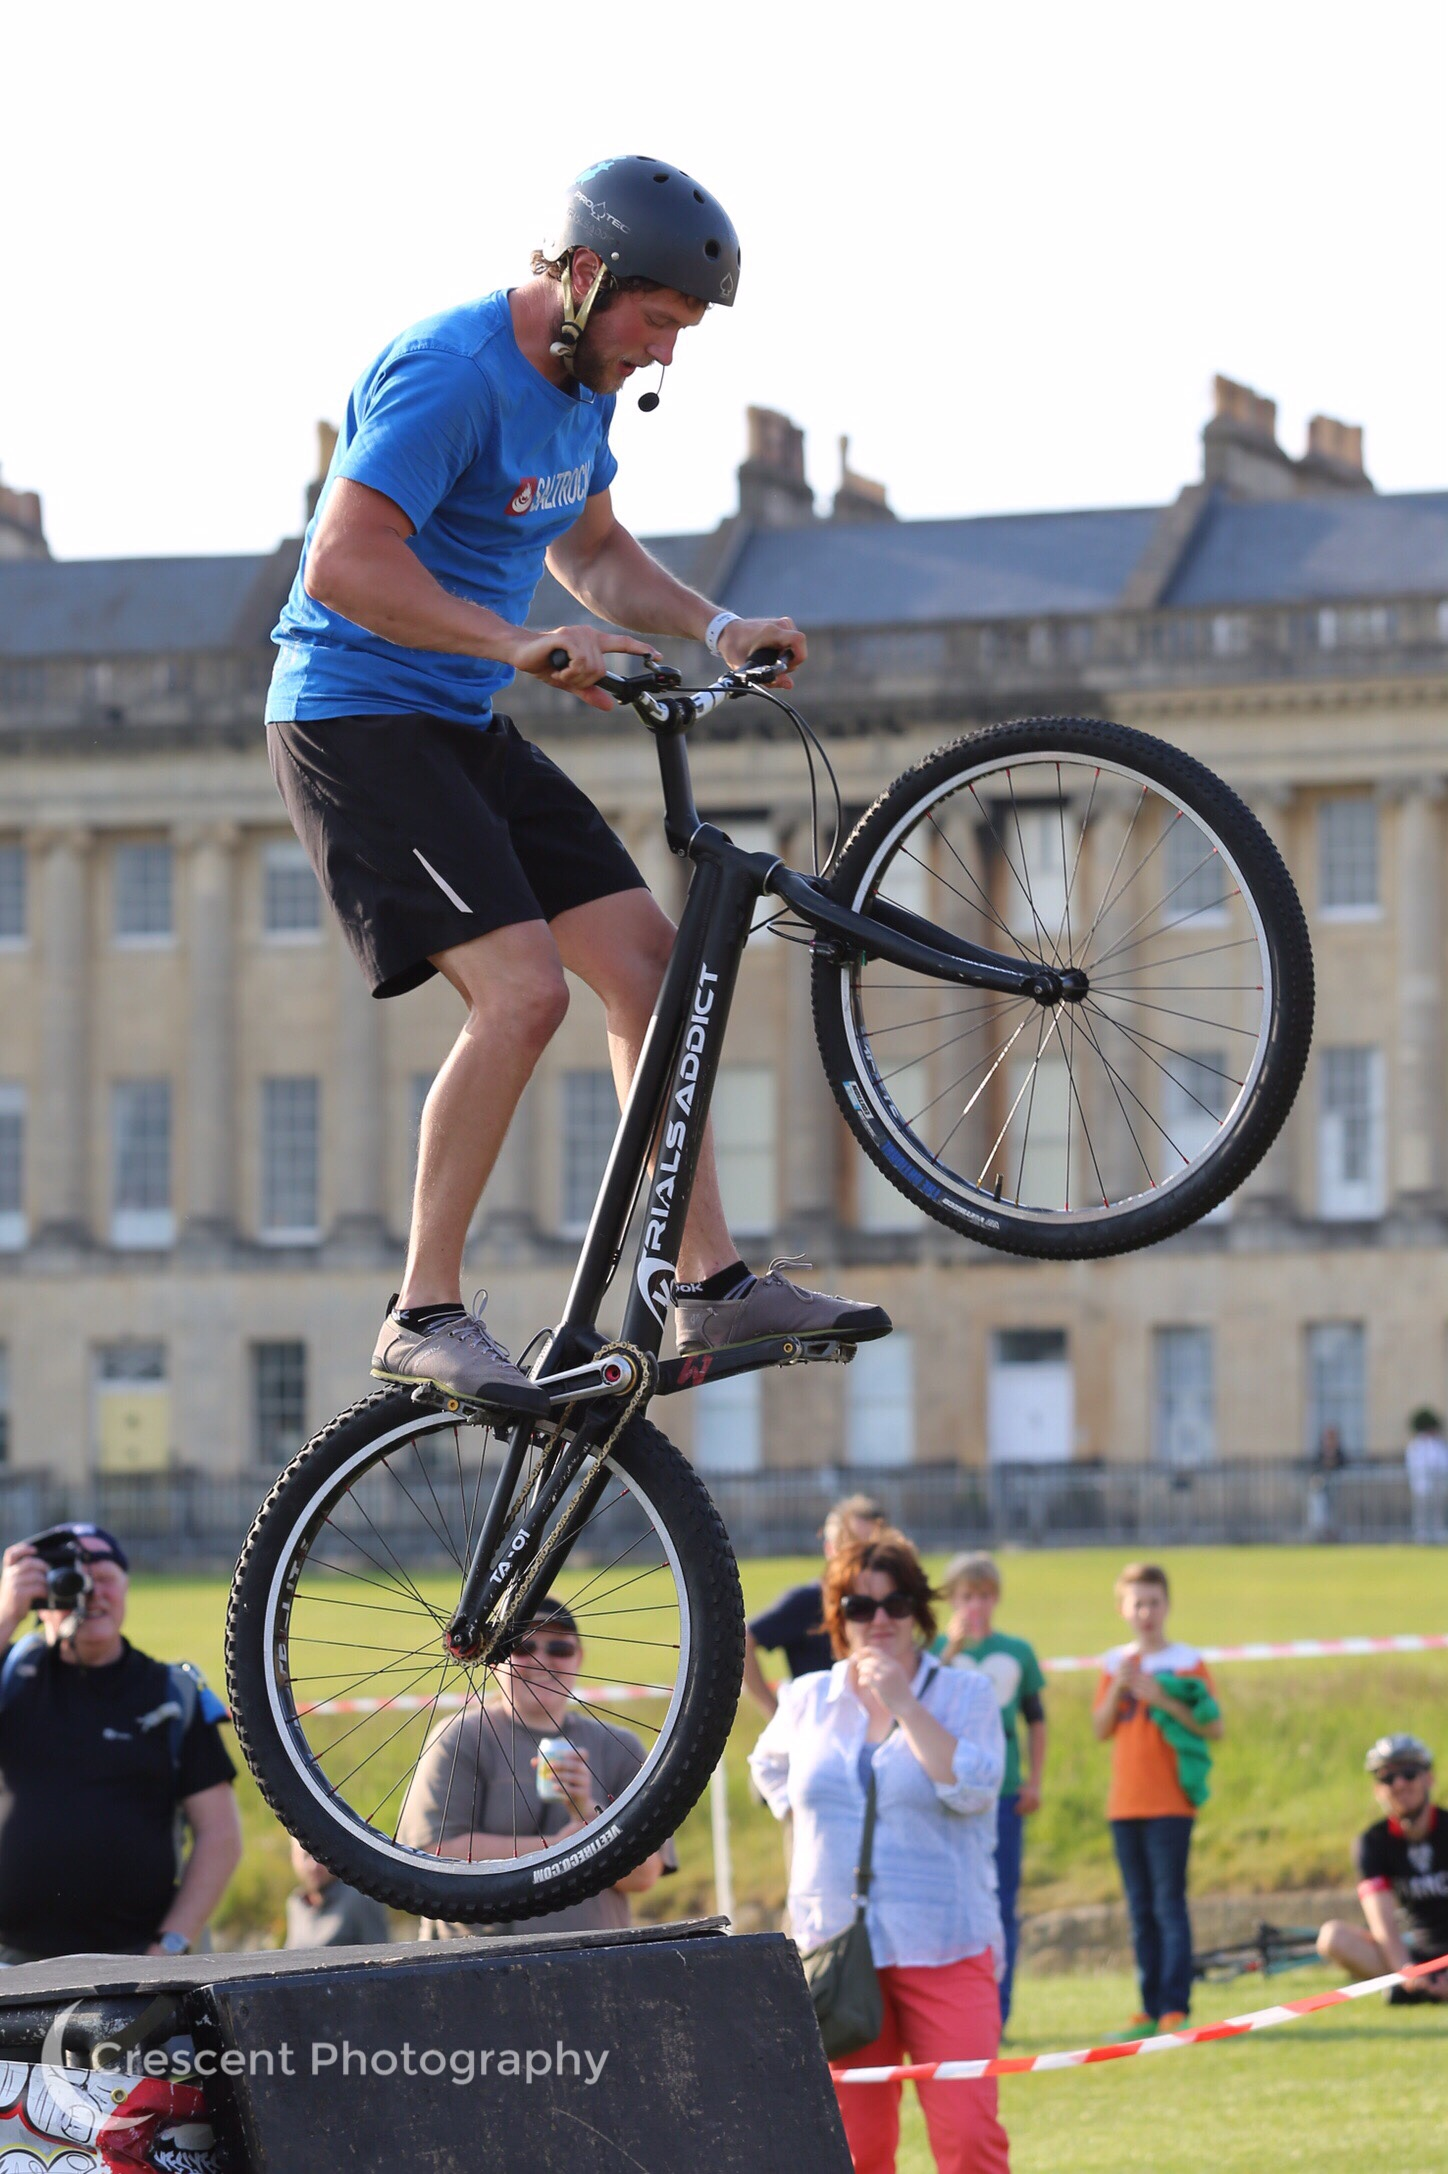 Trials rider in front of the Royal Crescent